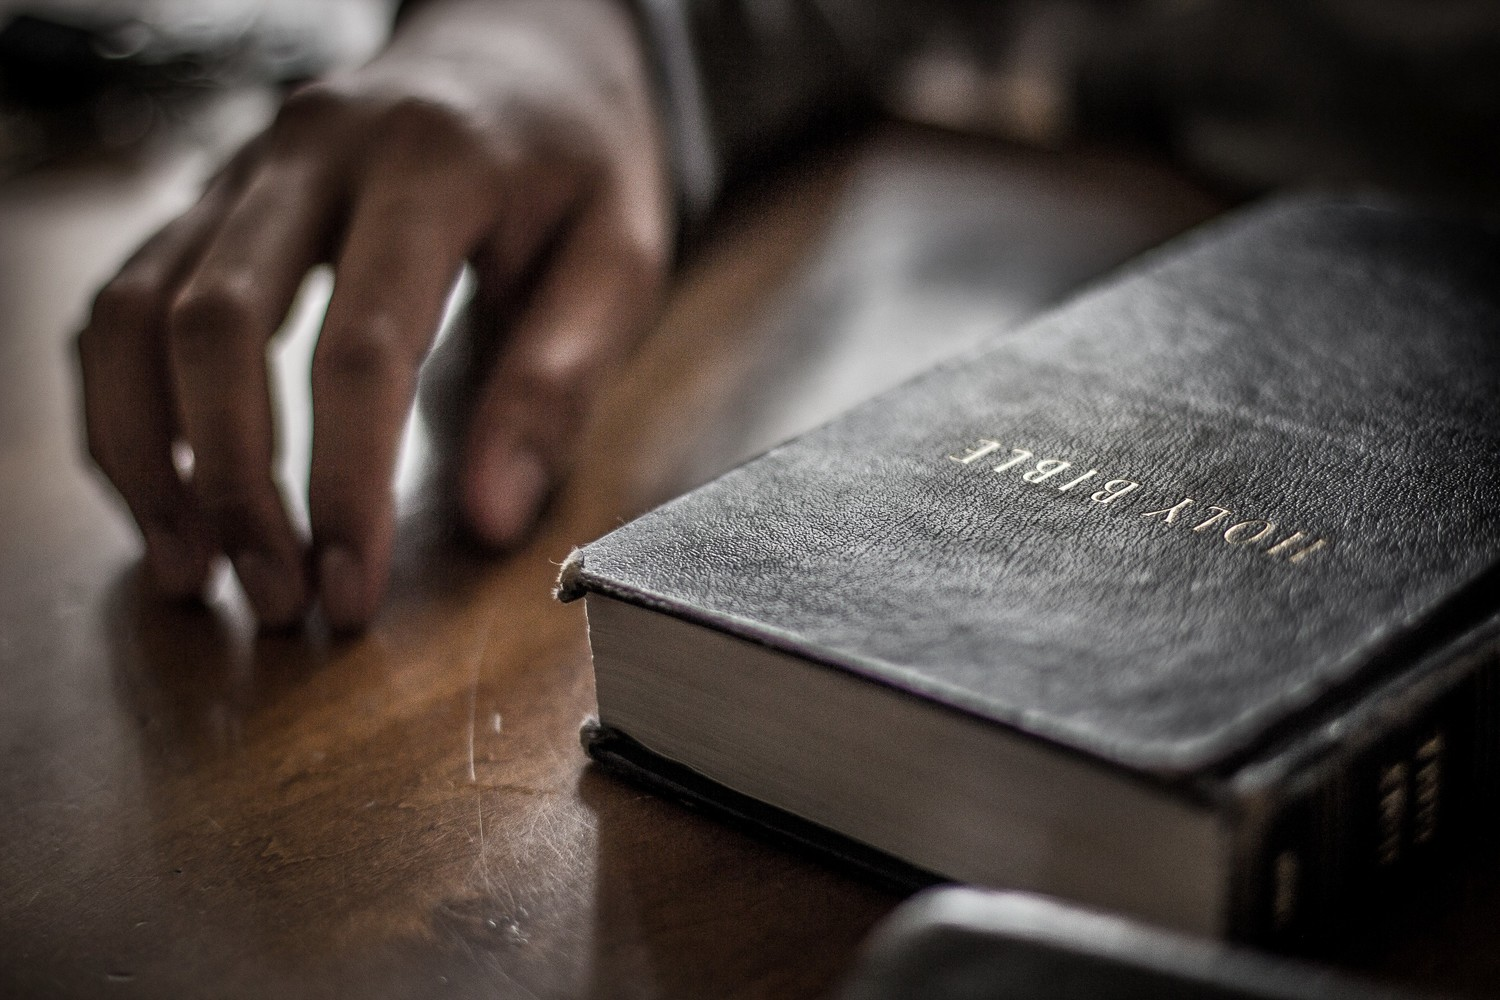 Bible+Study+Christian+Stock+Photo